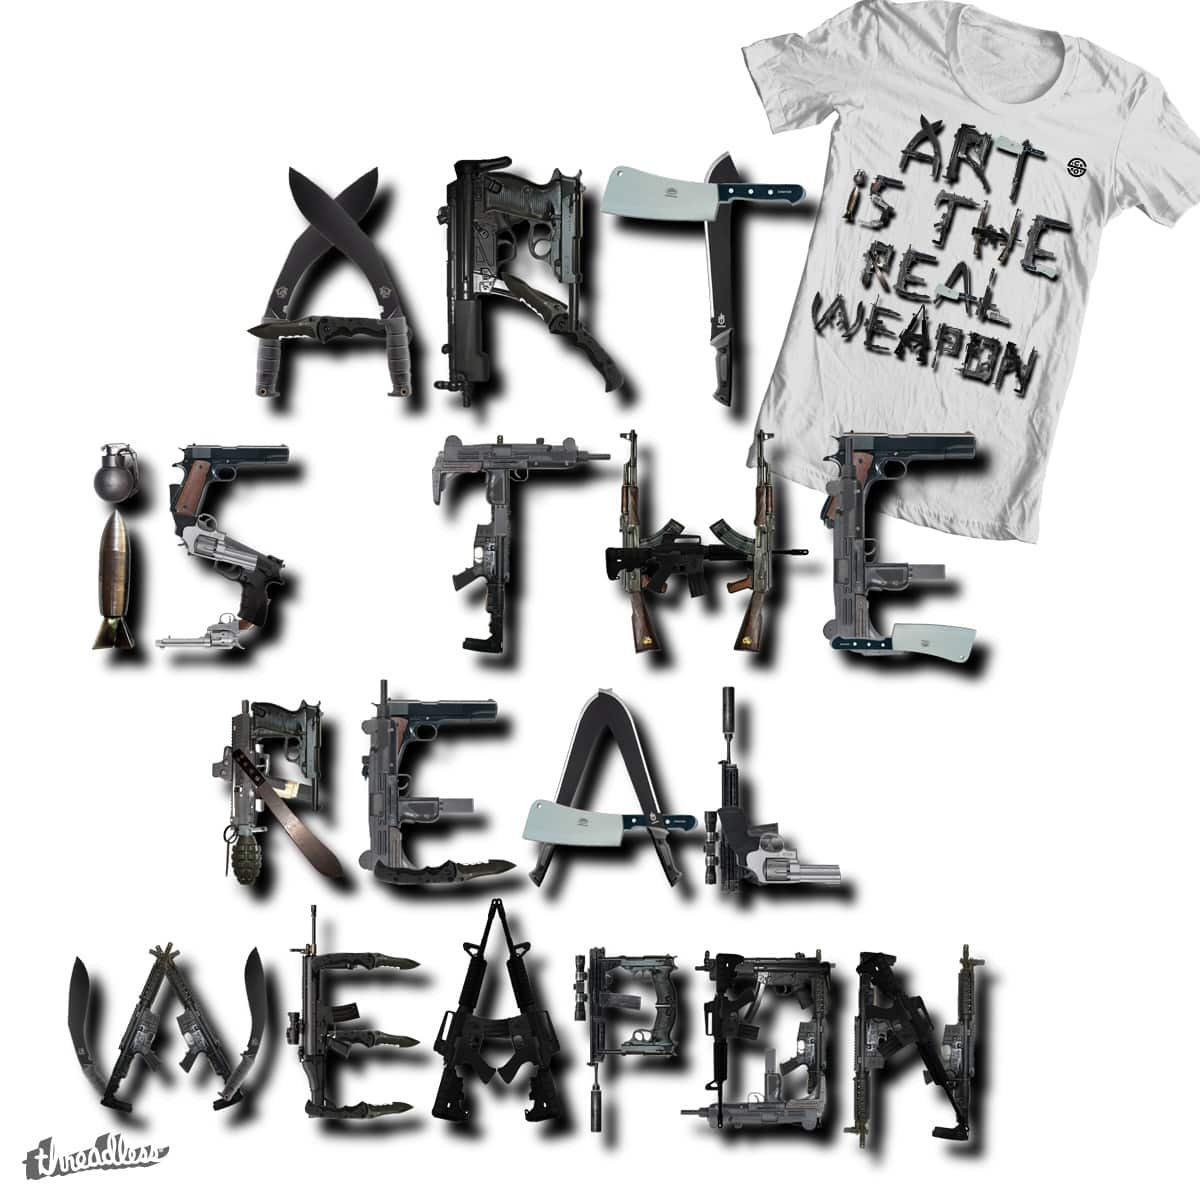 ART IS THE REAL WEAPON by sick-boy on Threadless